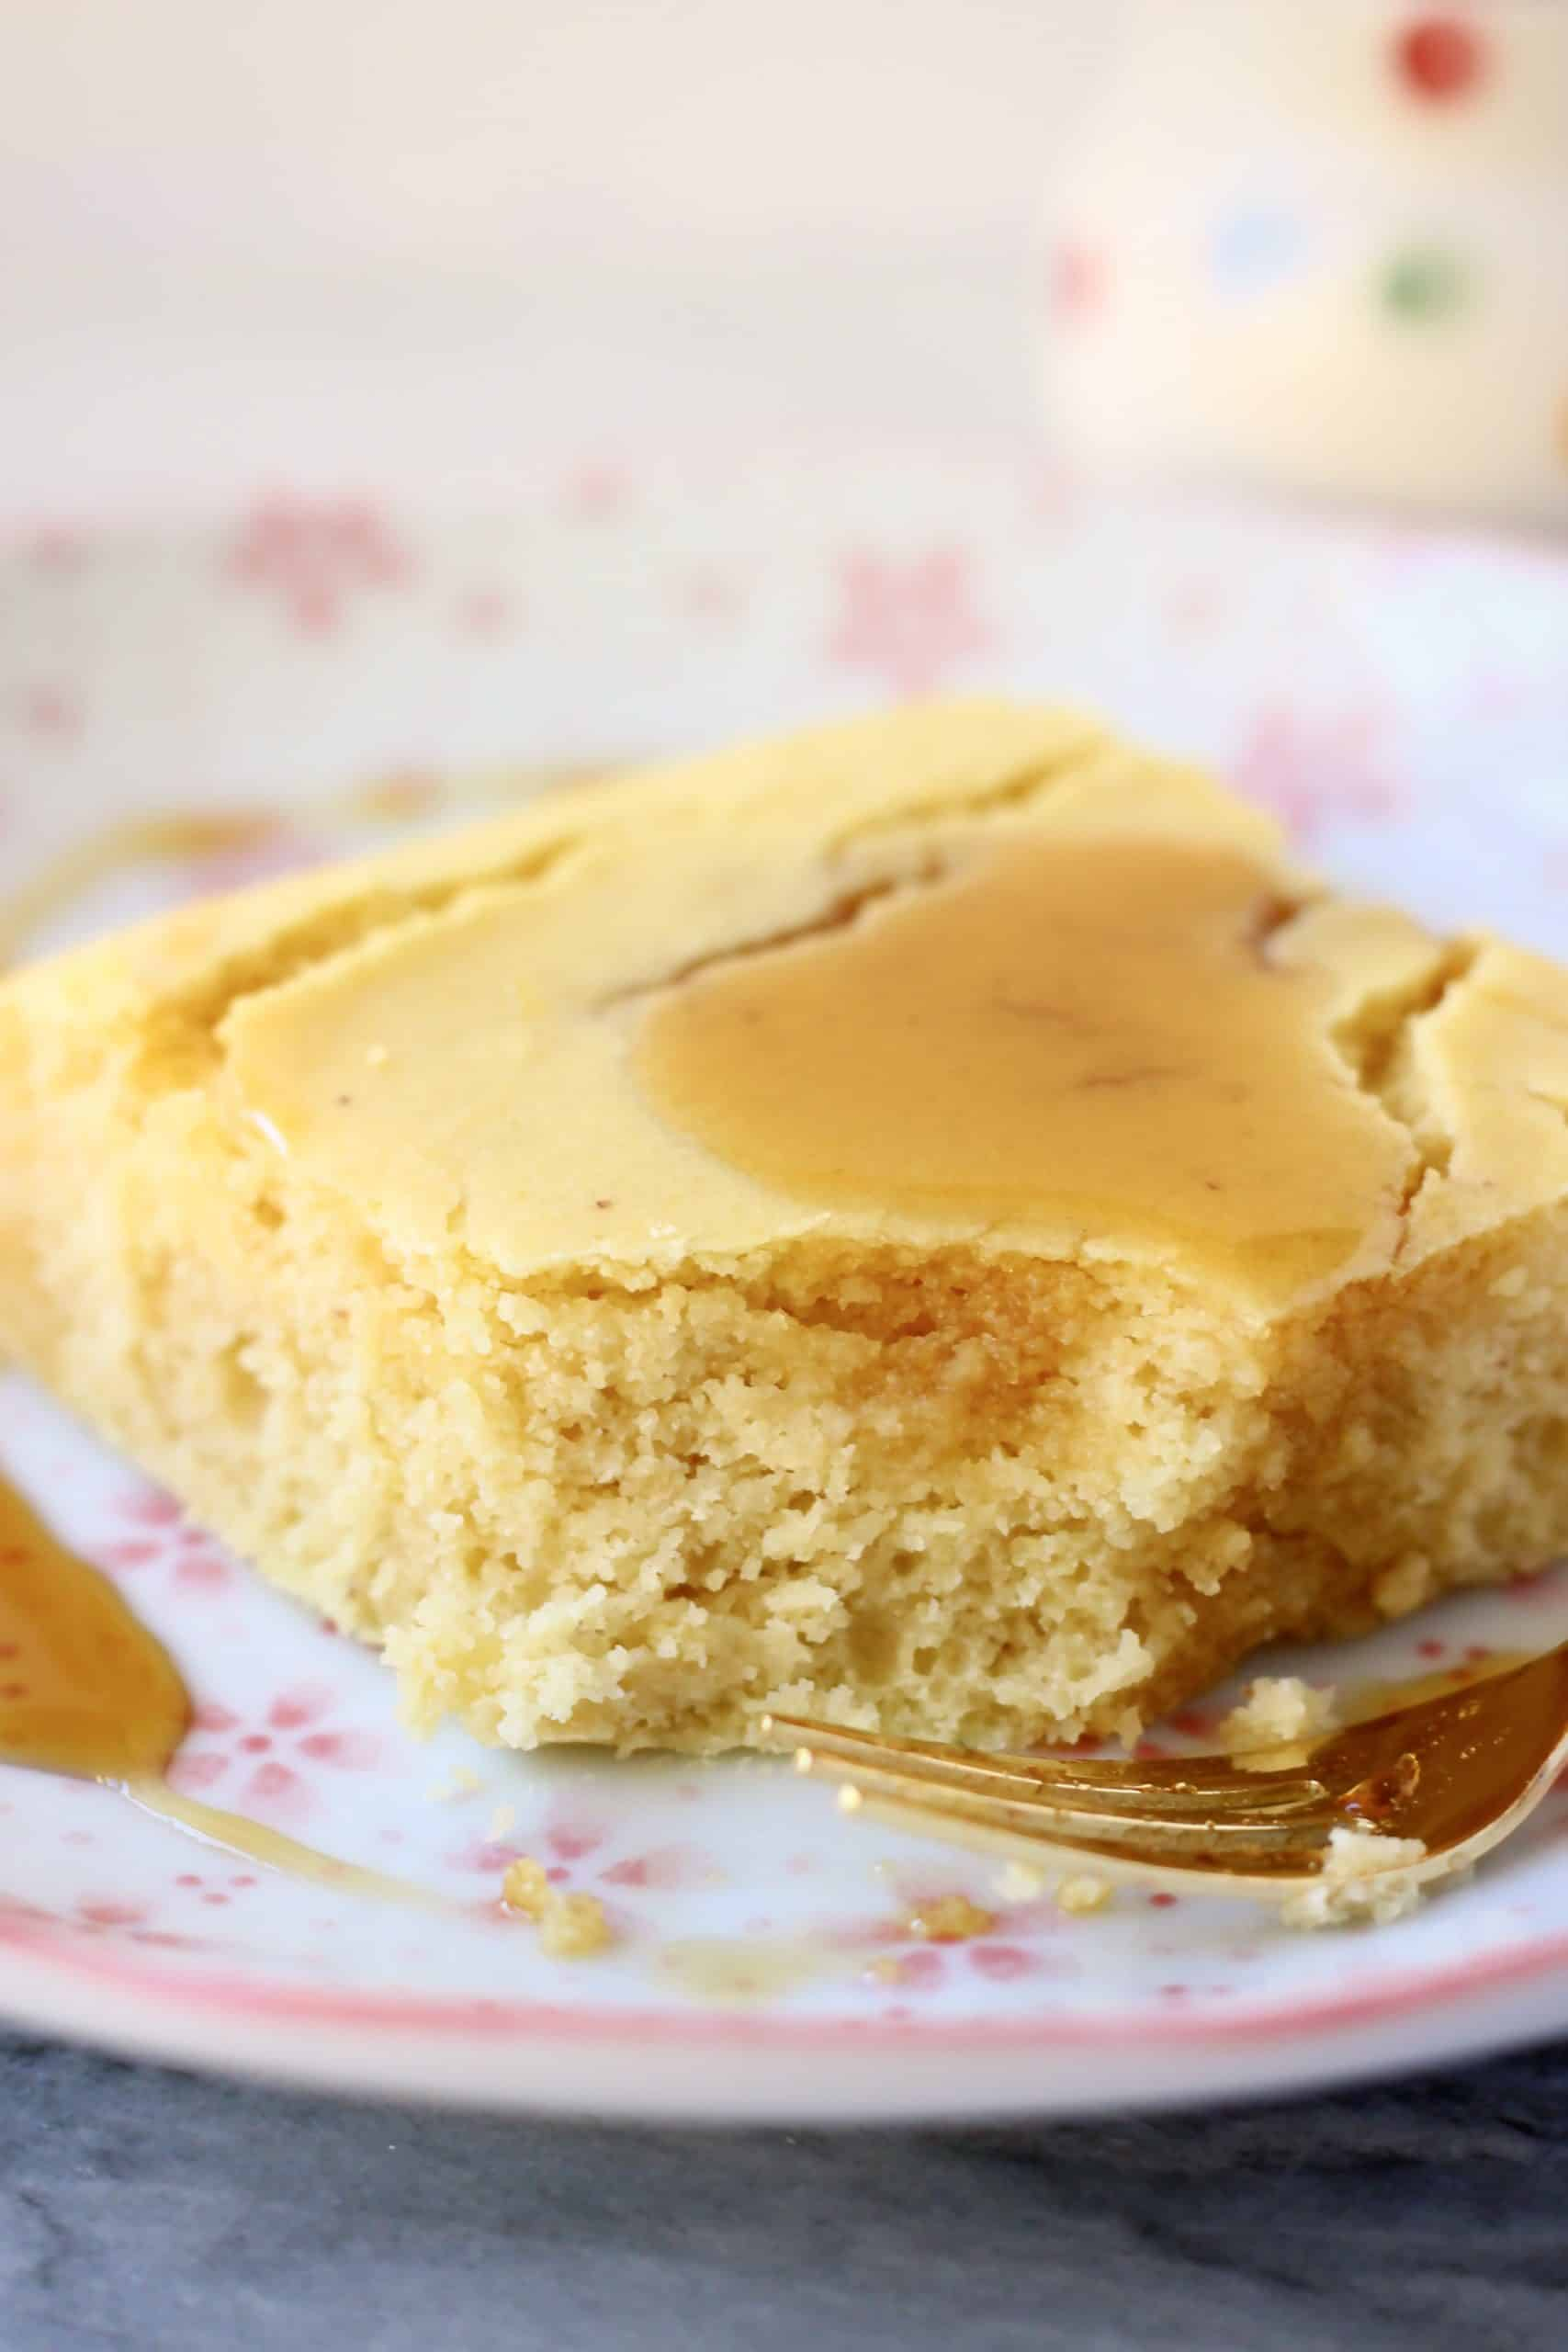 A square of cornbread with a mouthful taken out of it and maple syrup poured on top